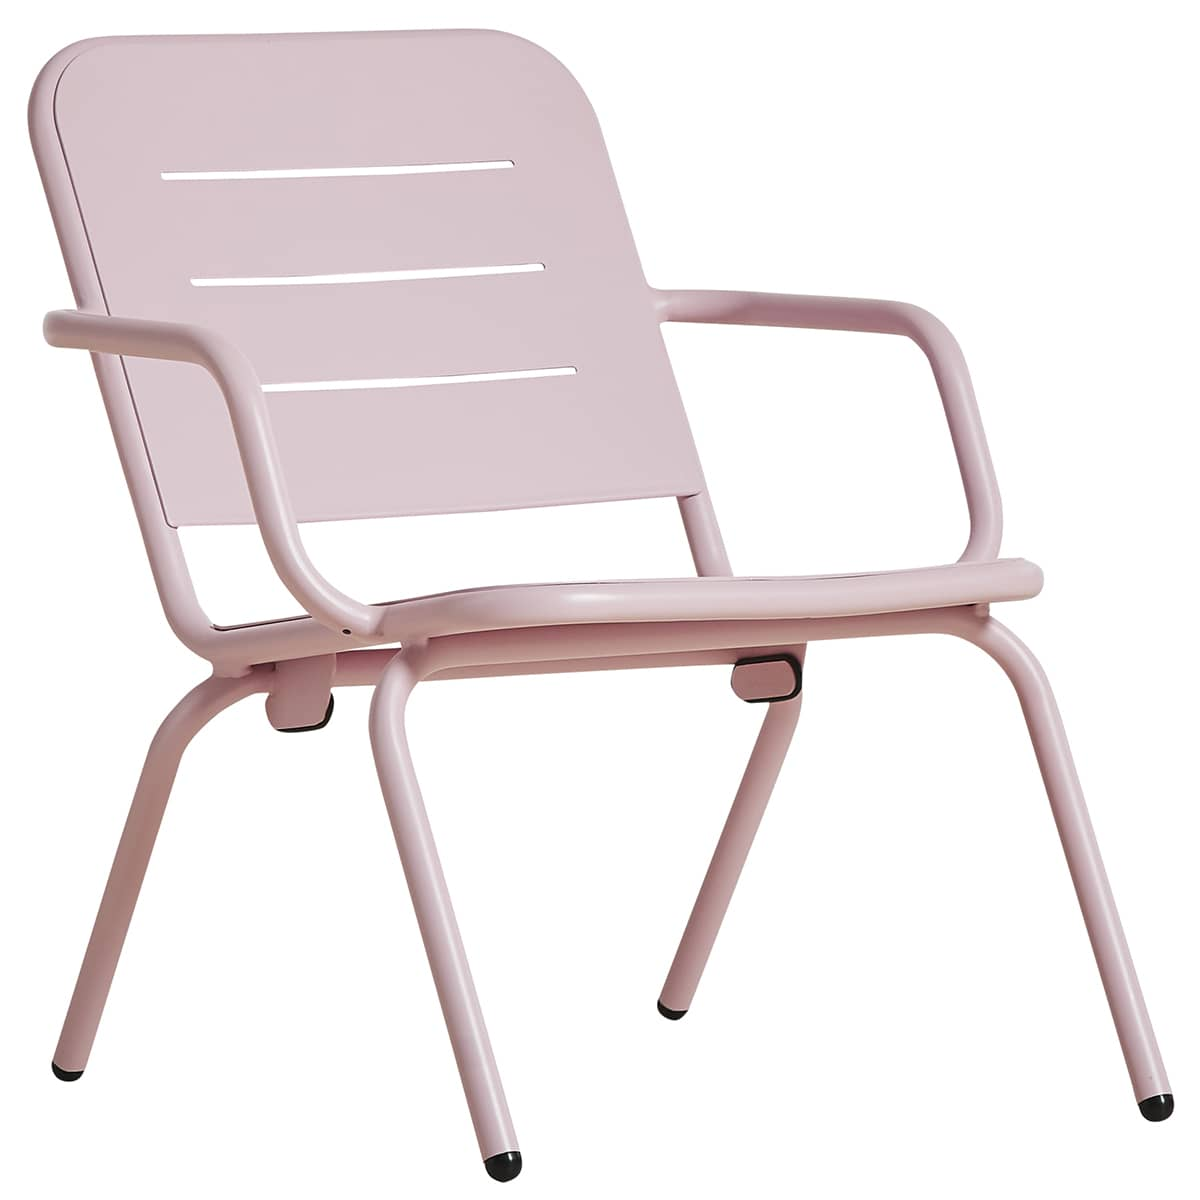 Chaise longue outdoor RAY, par FASTING & ROLFF pour WOUD